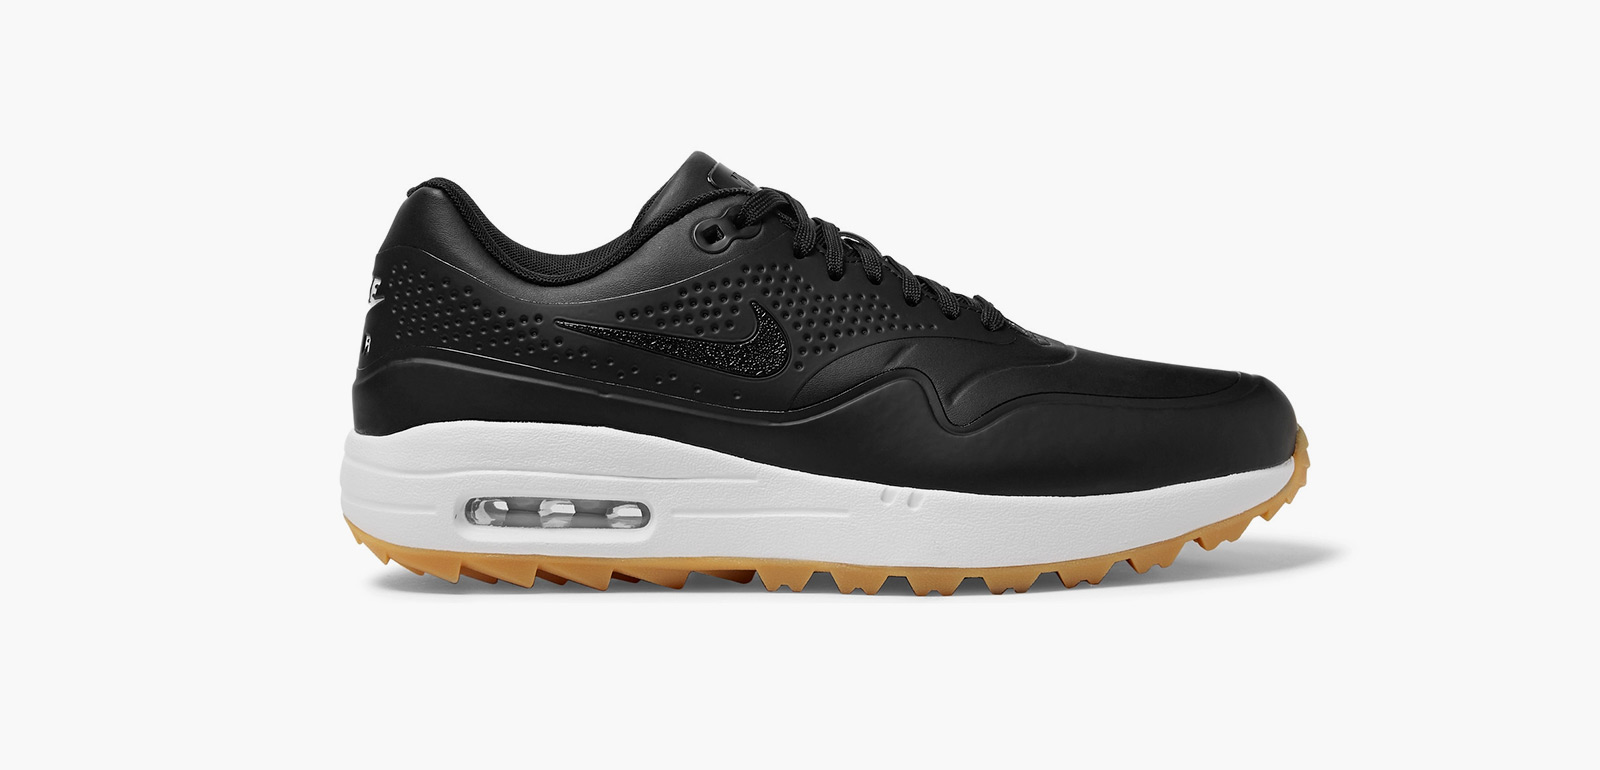 Style, Footwear, Nike, Nike Golf Air Max 1G